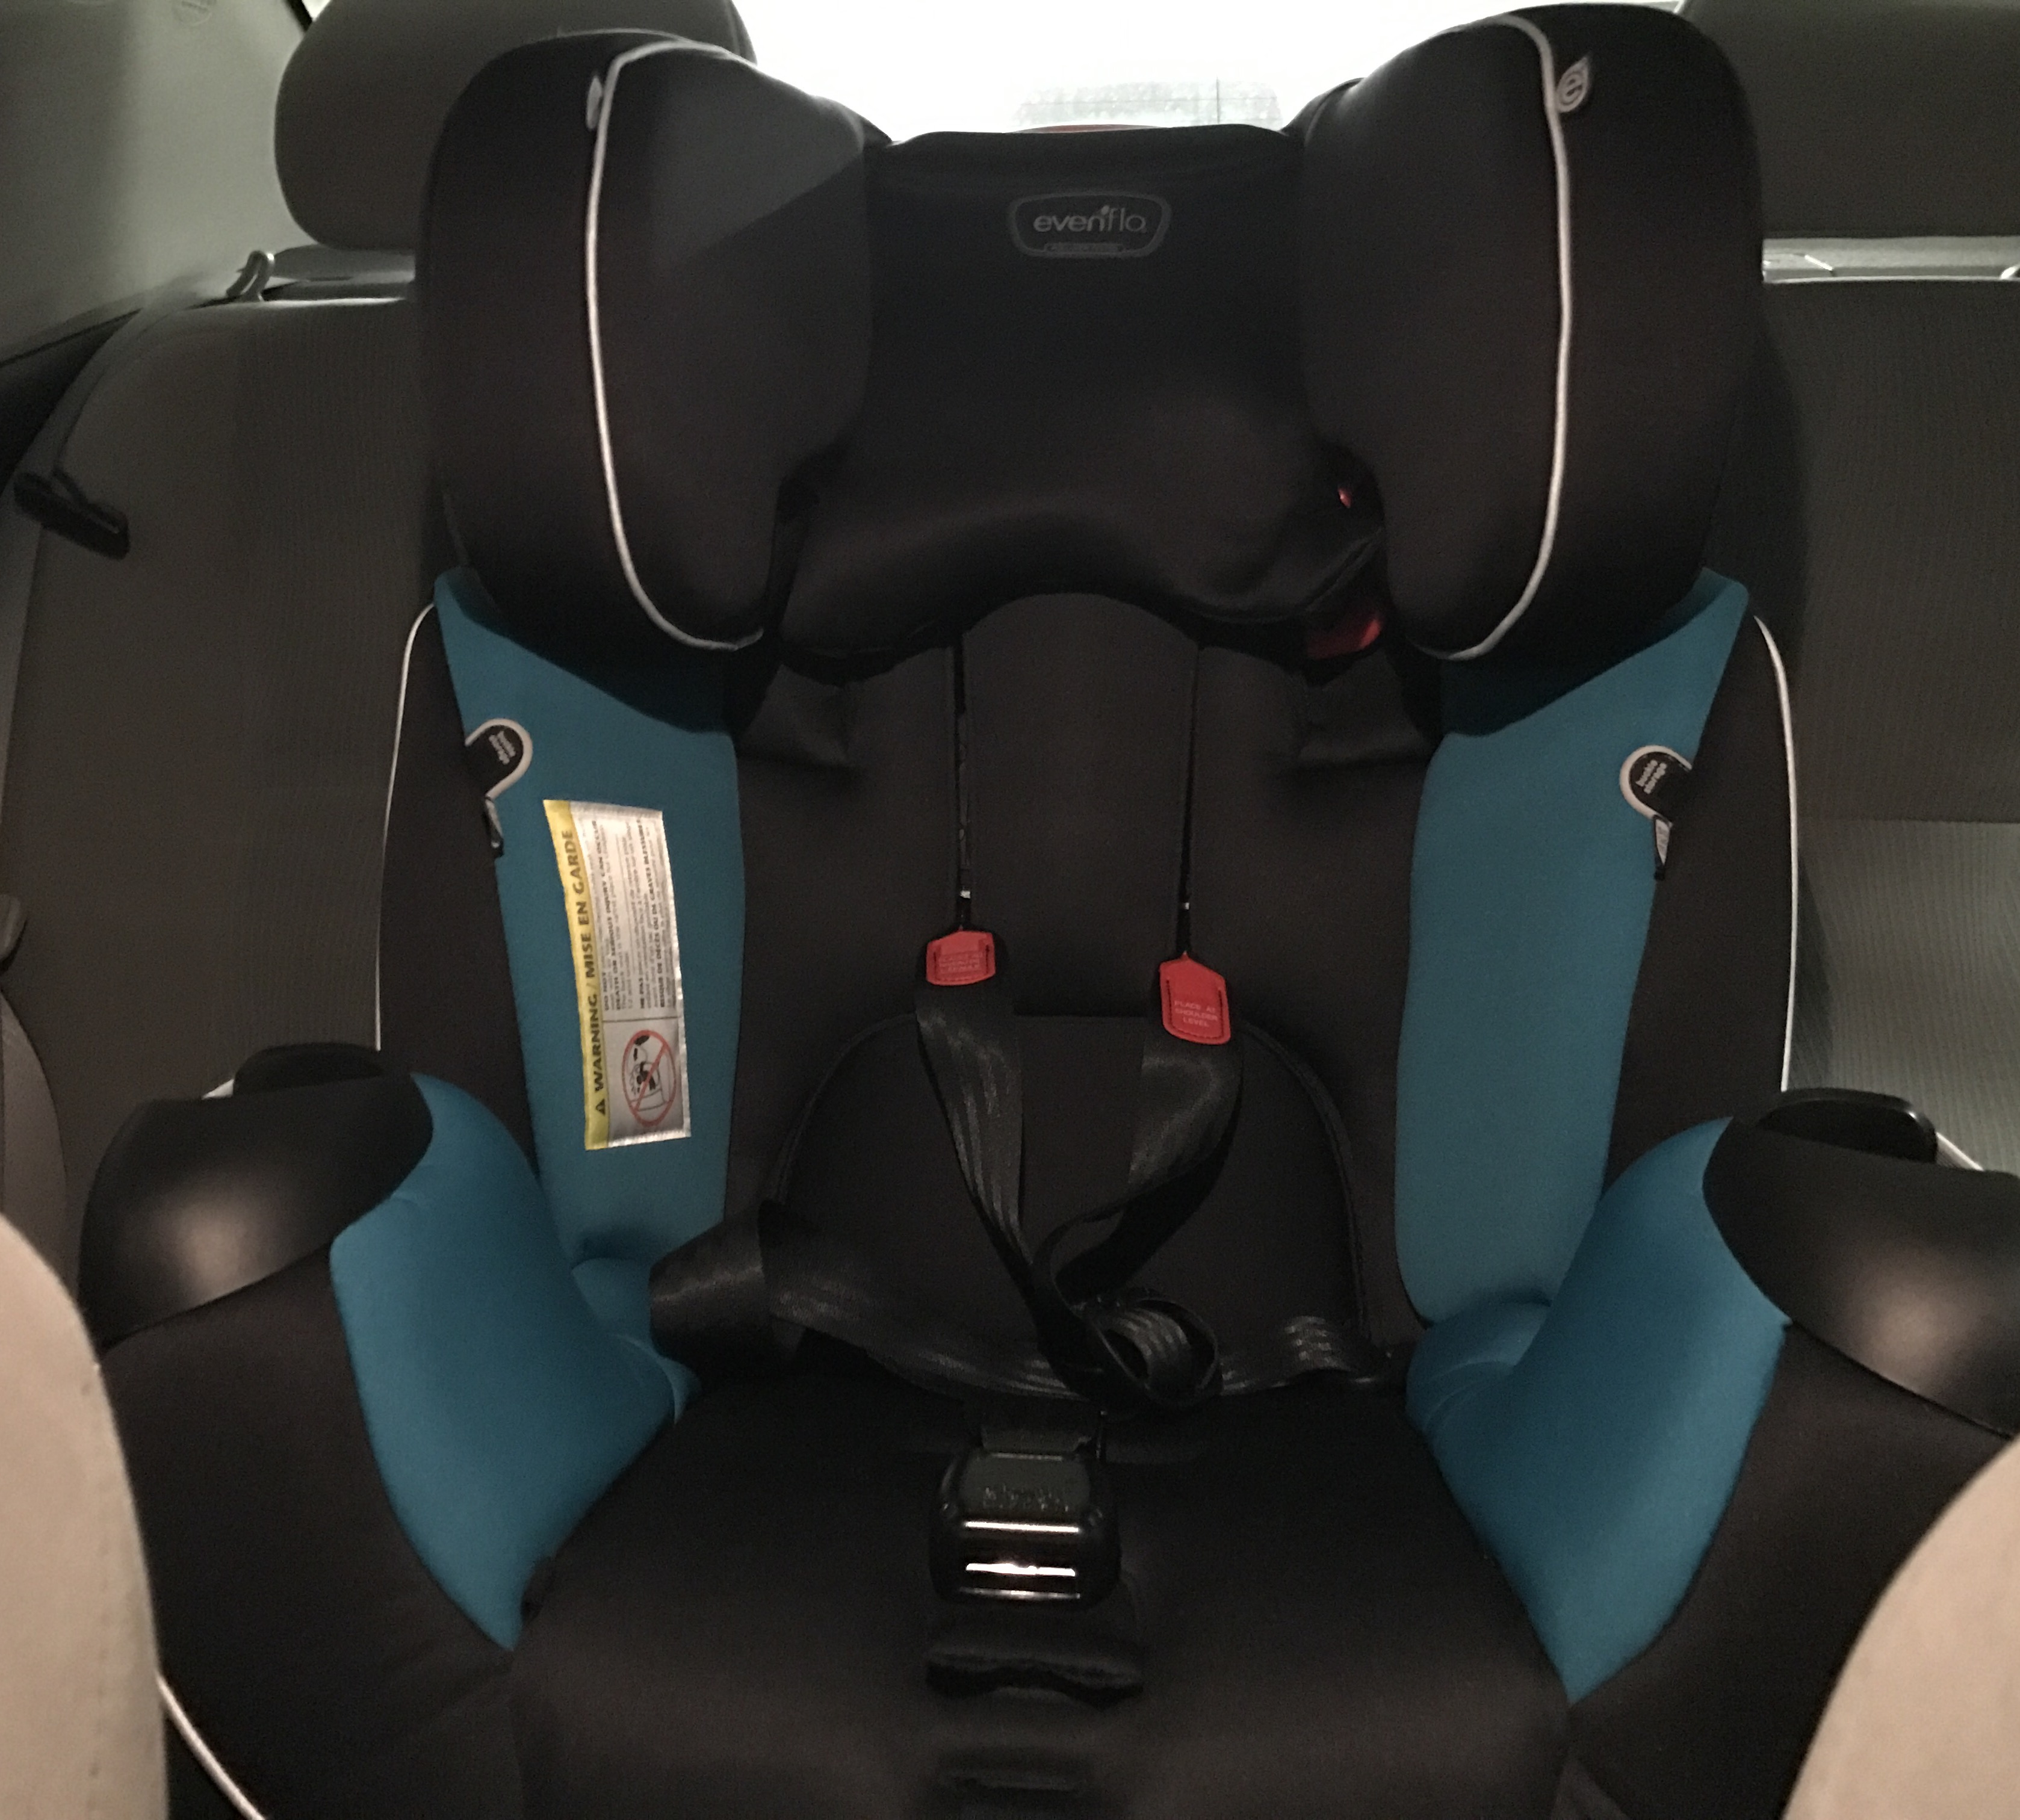 Evenflos New Symphony LX Baby Seat Continues To Please